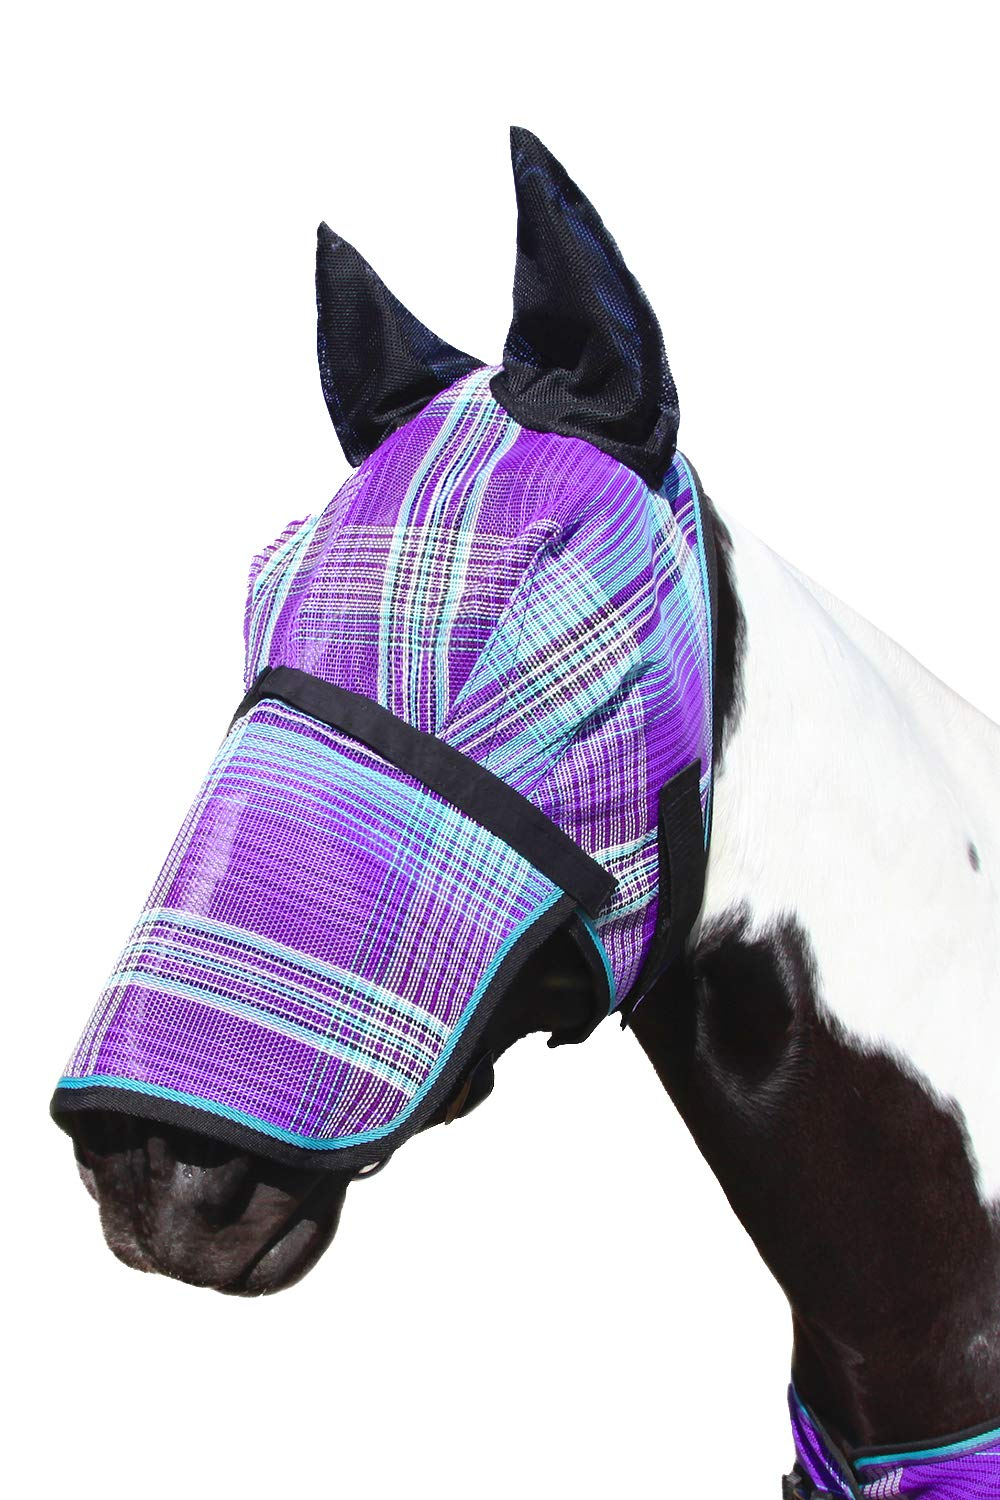 Kensington Signature Fly Mask with Removable Nose and Soft Mesh Ears - Protects Horses Face, Nose and Ears from Biting Insects and UV Rays While Allowing Full Visibility (L, Lavender Mint)